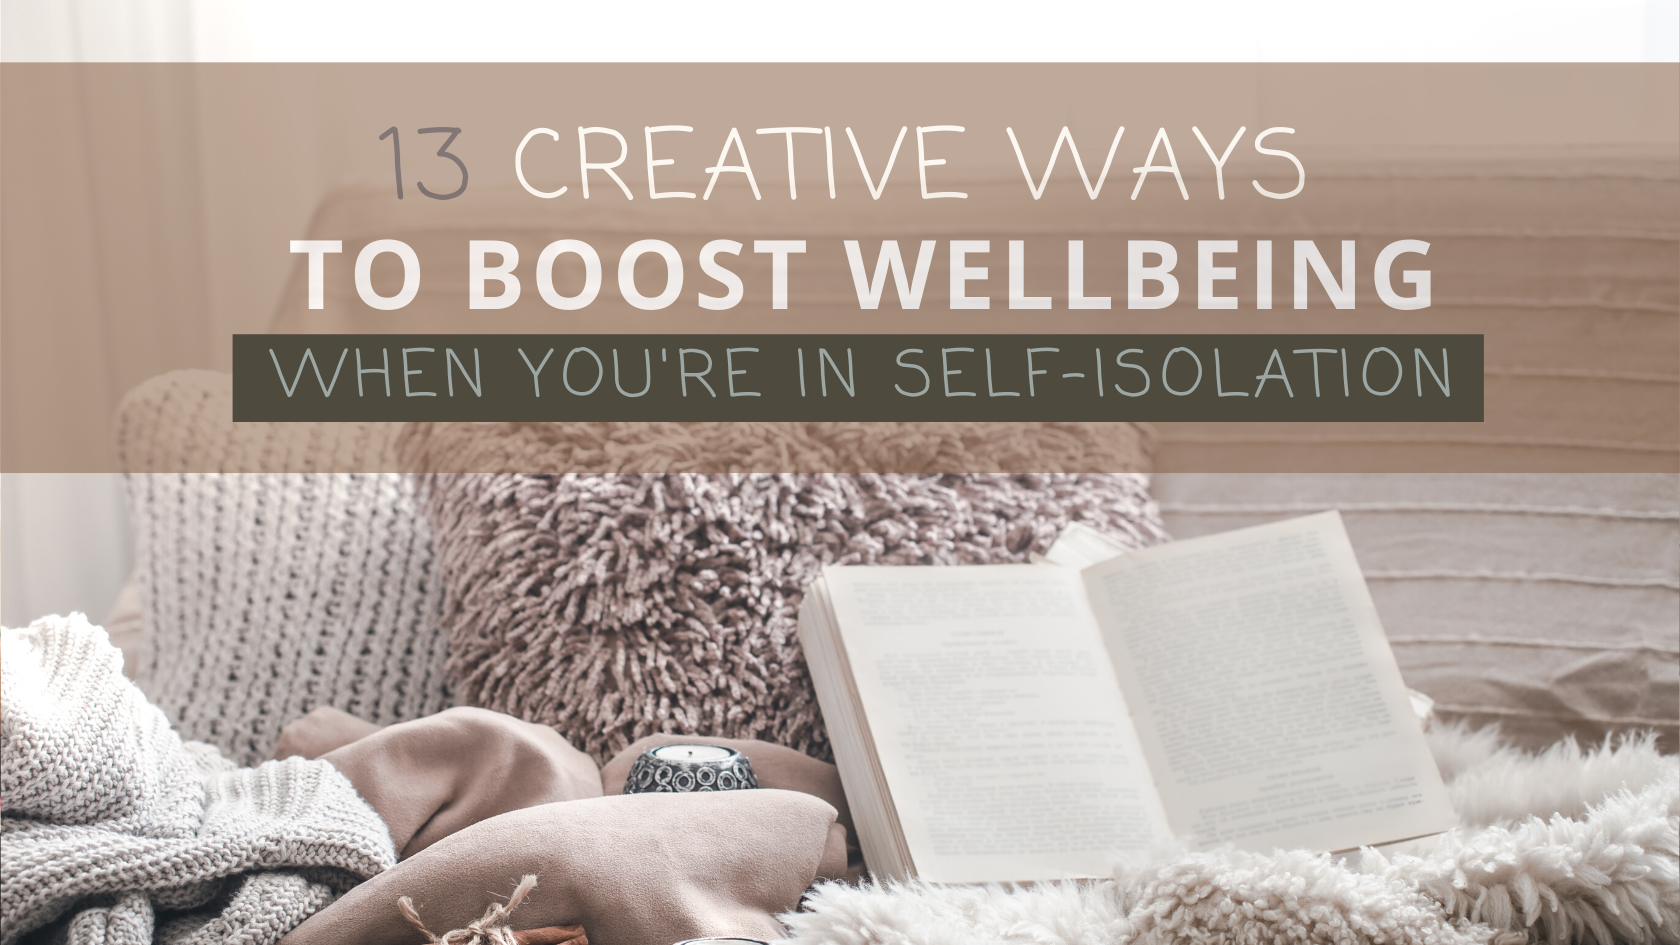 13 Creative Ways to Boost Your Wellbeing when in Self-Isolation